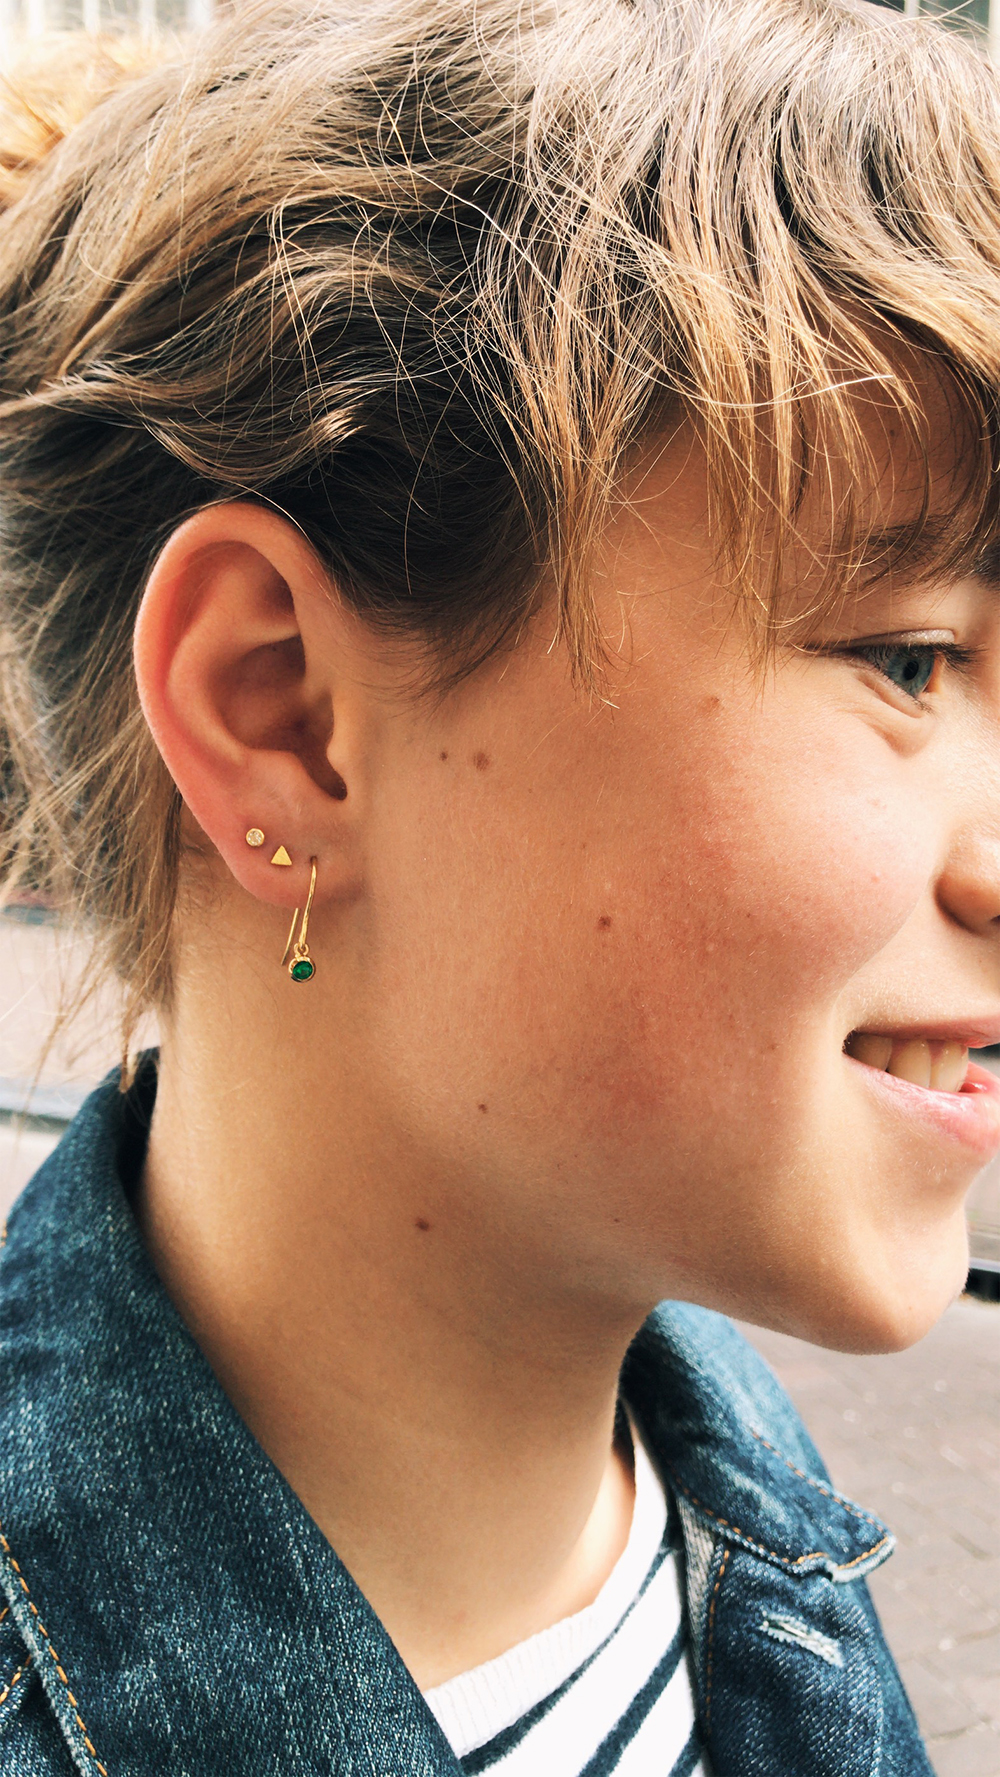 Kids Ear Piercing Near Me : piercing, Piercings, Children, Babyccino, Kids:, Daily, Tips,, Children's, Products,, Craft, Ideas,, Recipes